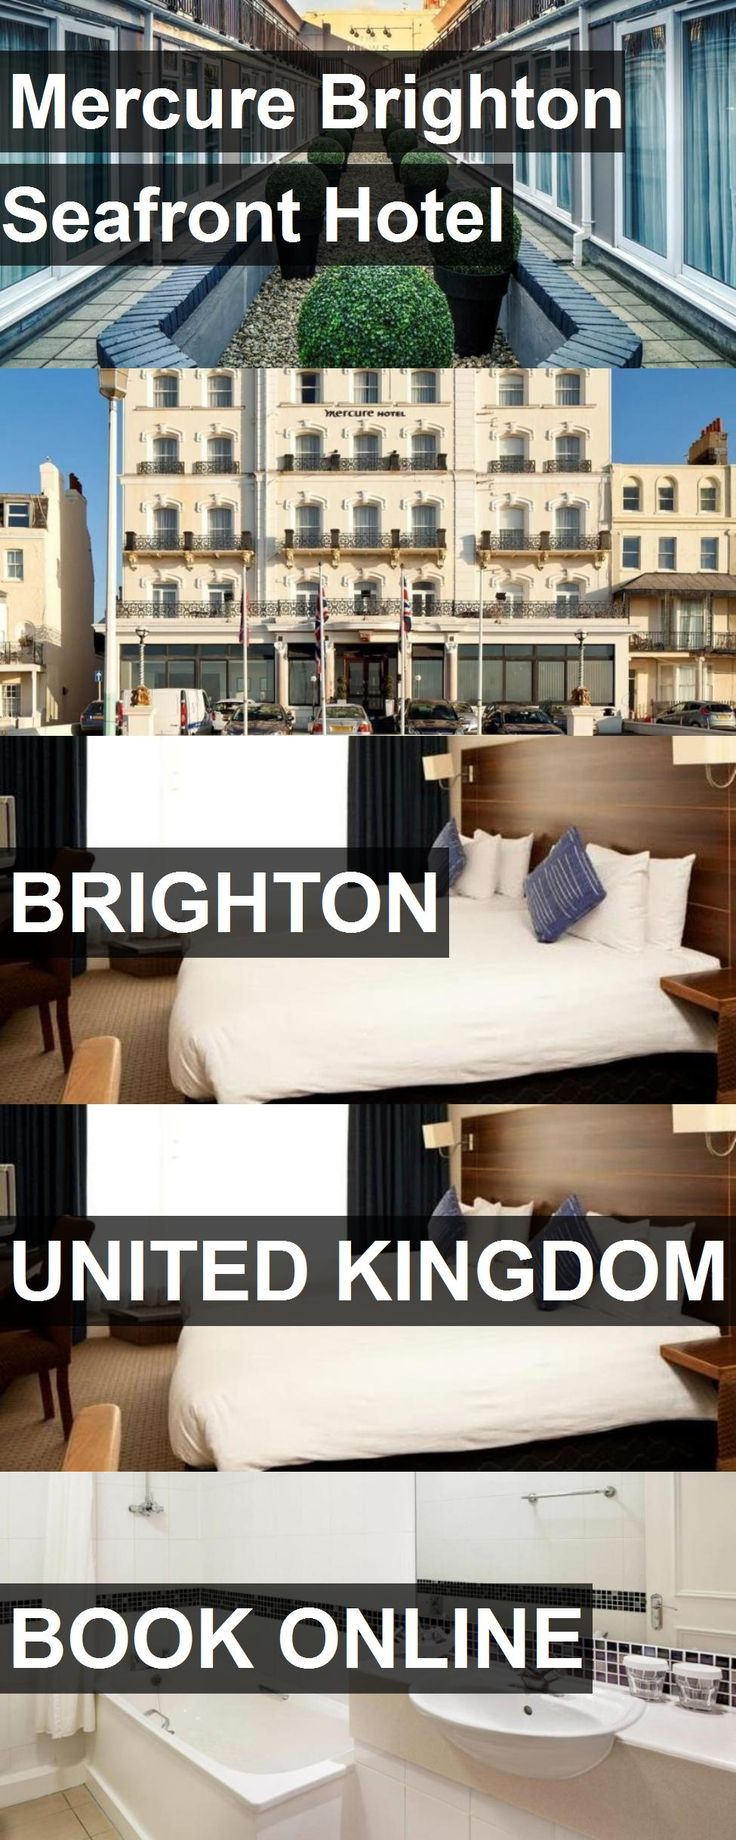 Hotel Mercure Brighton Seafront Hotel in Brighton, United Kingdom. For more information, photos, reviews and best prices please follow the link. #UnitedKingdom #Brighton #hotel #travel #vacation